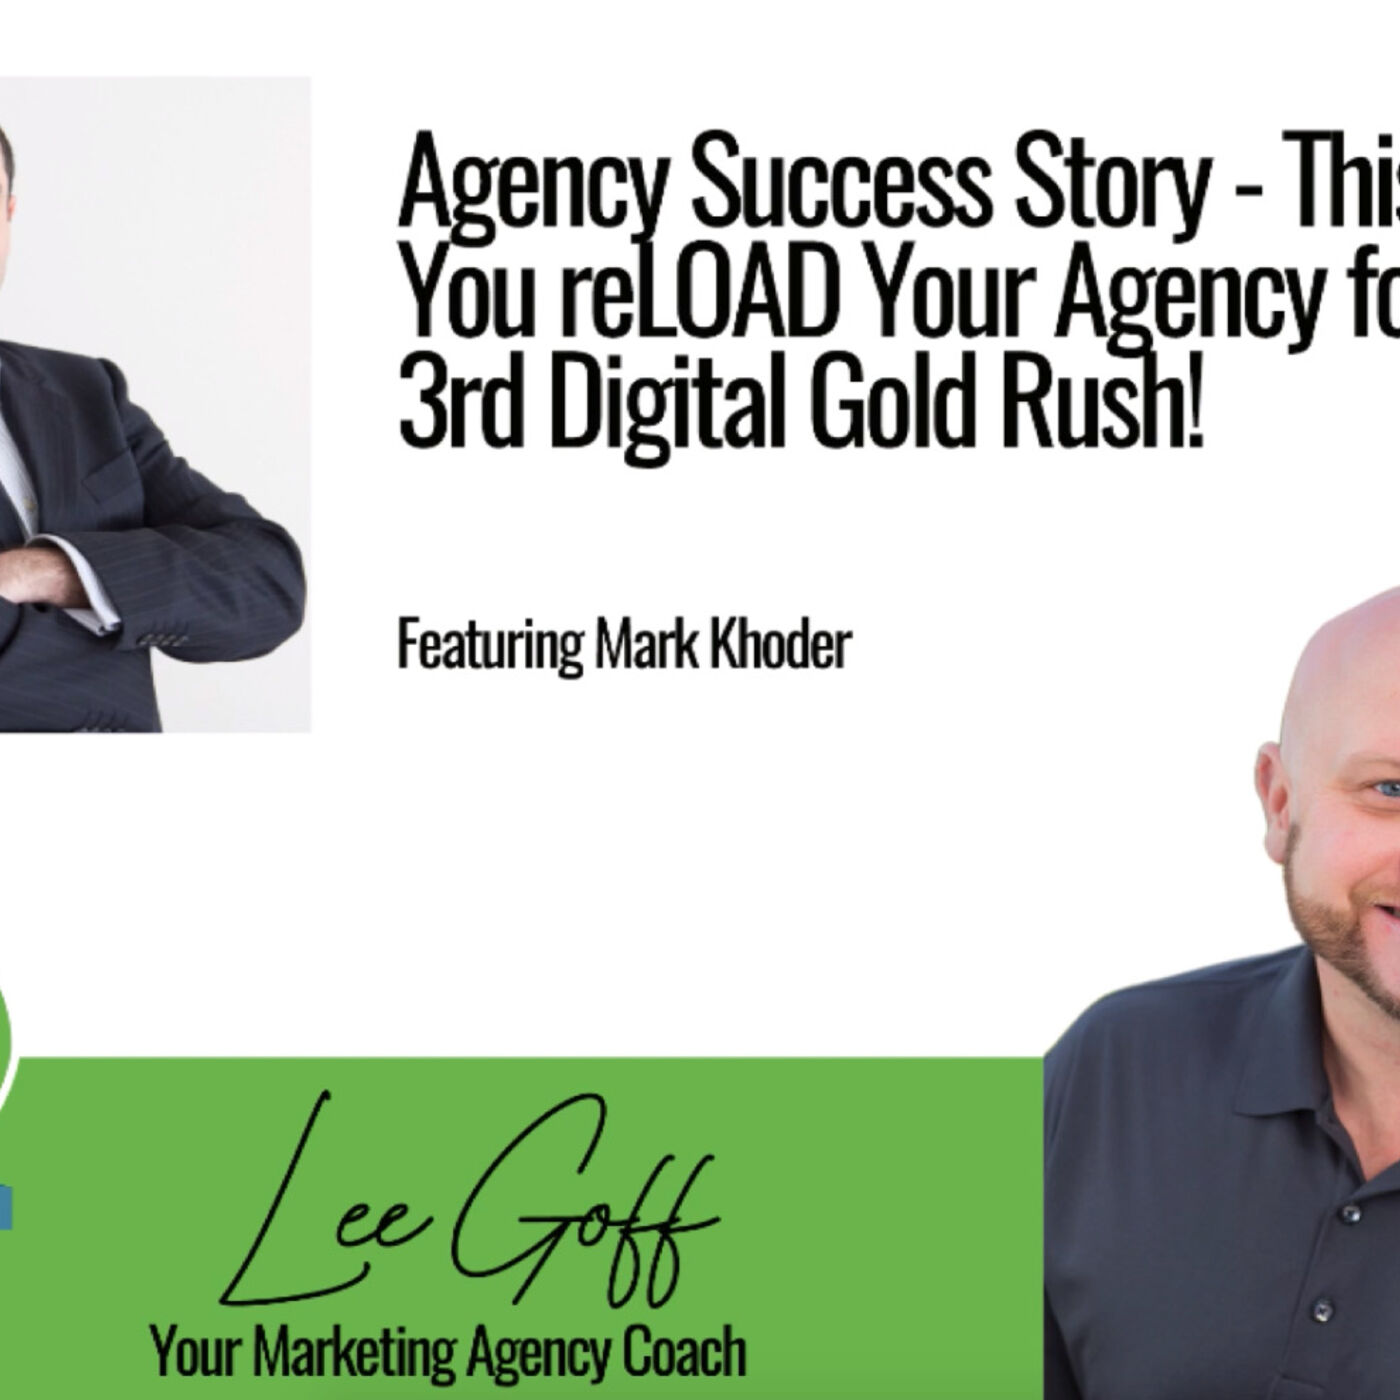 Mark Khoder - How to reLOAD Your Agency During Down Times - Agency Success GPS Podcast - Lee Goff - Episode 5